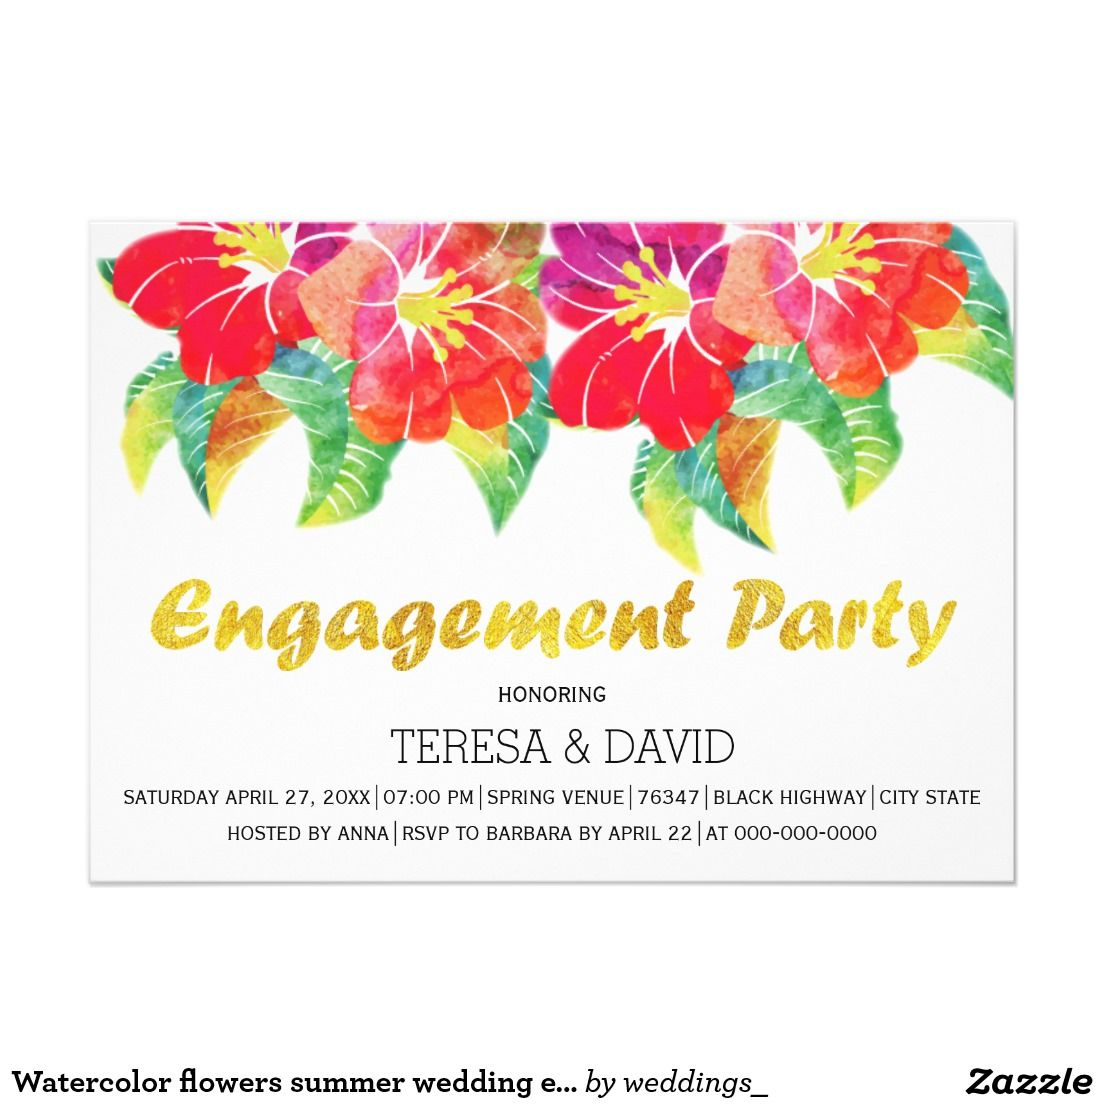 Watercolor flowers summer wedding engagement party card | Wedding ...